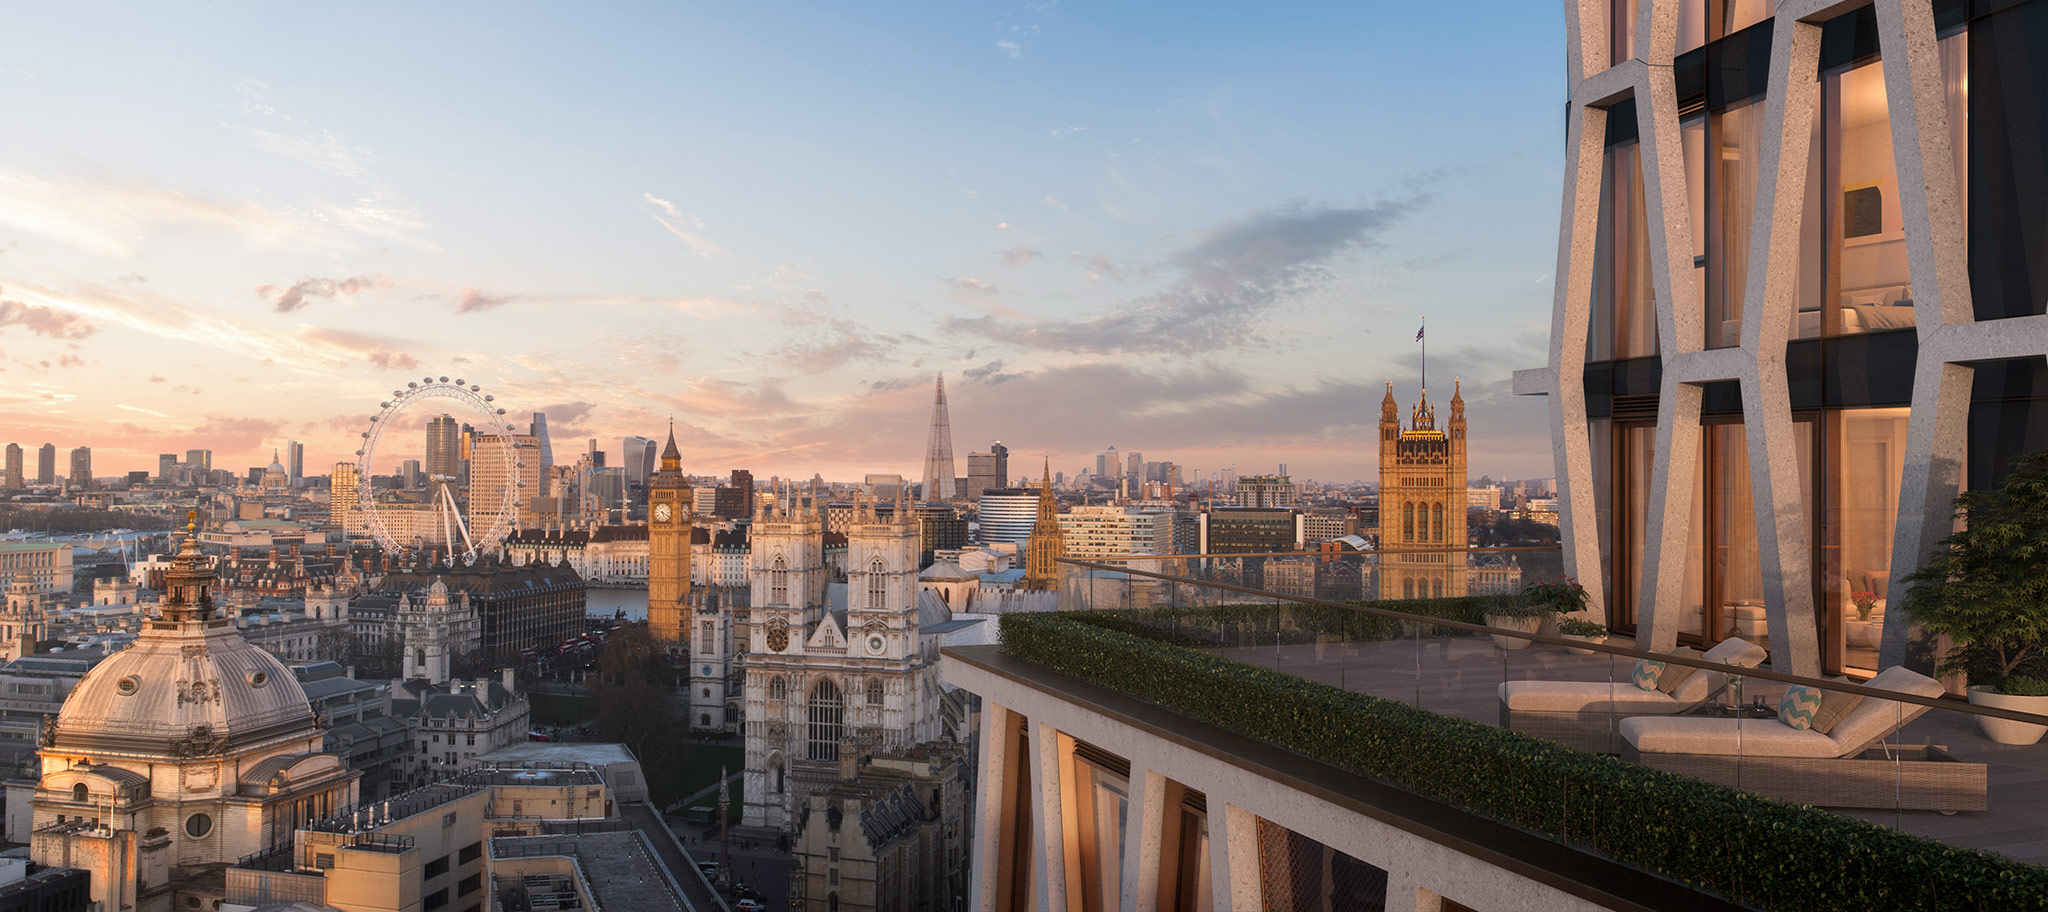 Views from The Broadway, over London